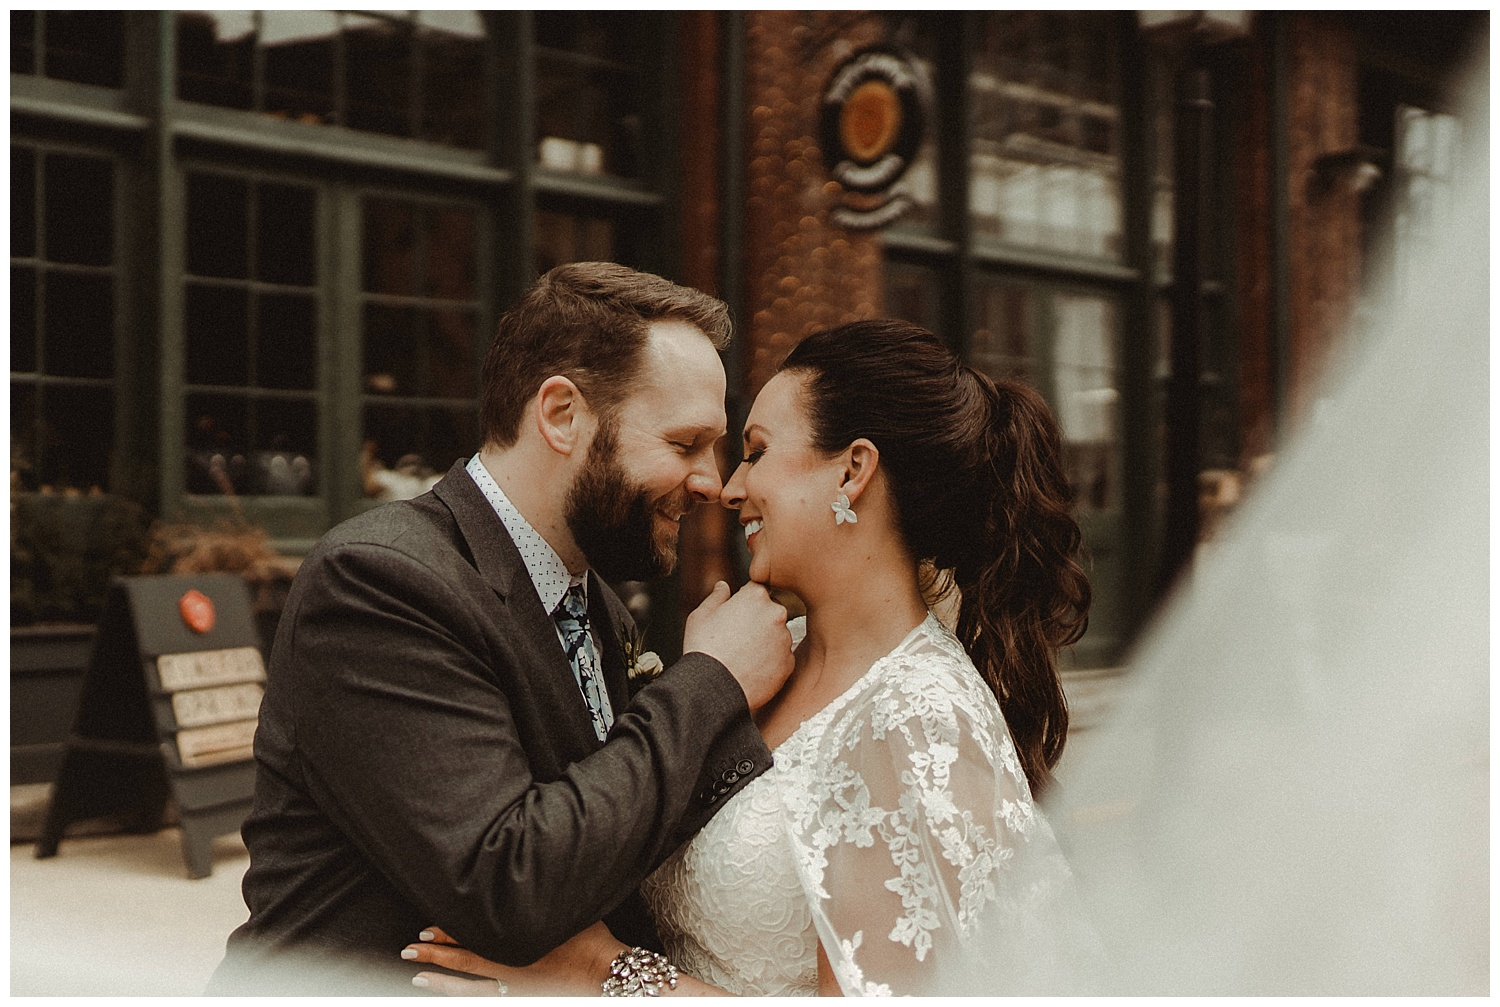 Katie Marie Photography | Archeo Wedding Arta Gallery Wedding | Distillery District Wedding | Toronto Wedding Photographer | Hamilton Toronto Ontario Wedding Photographer |_0076.jpg